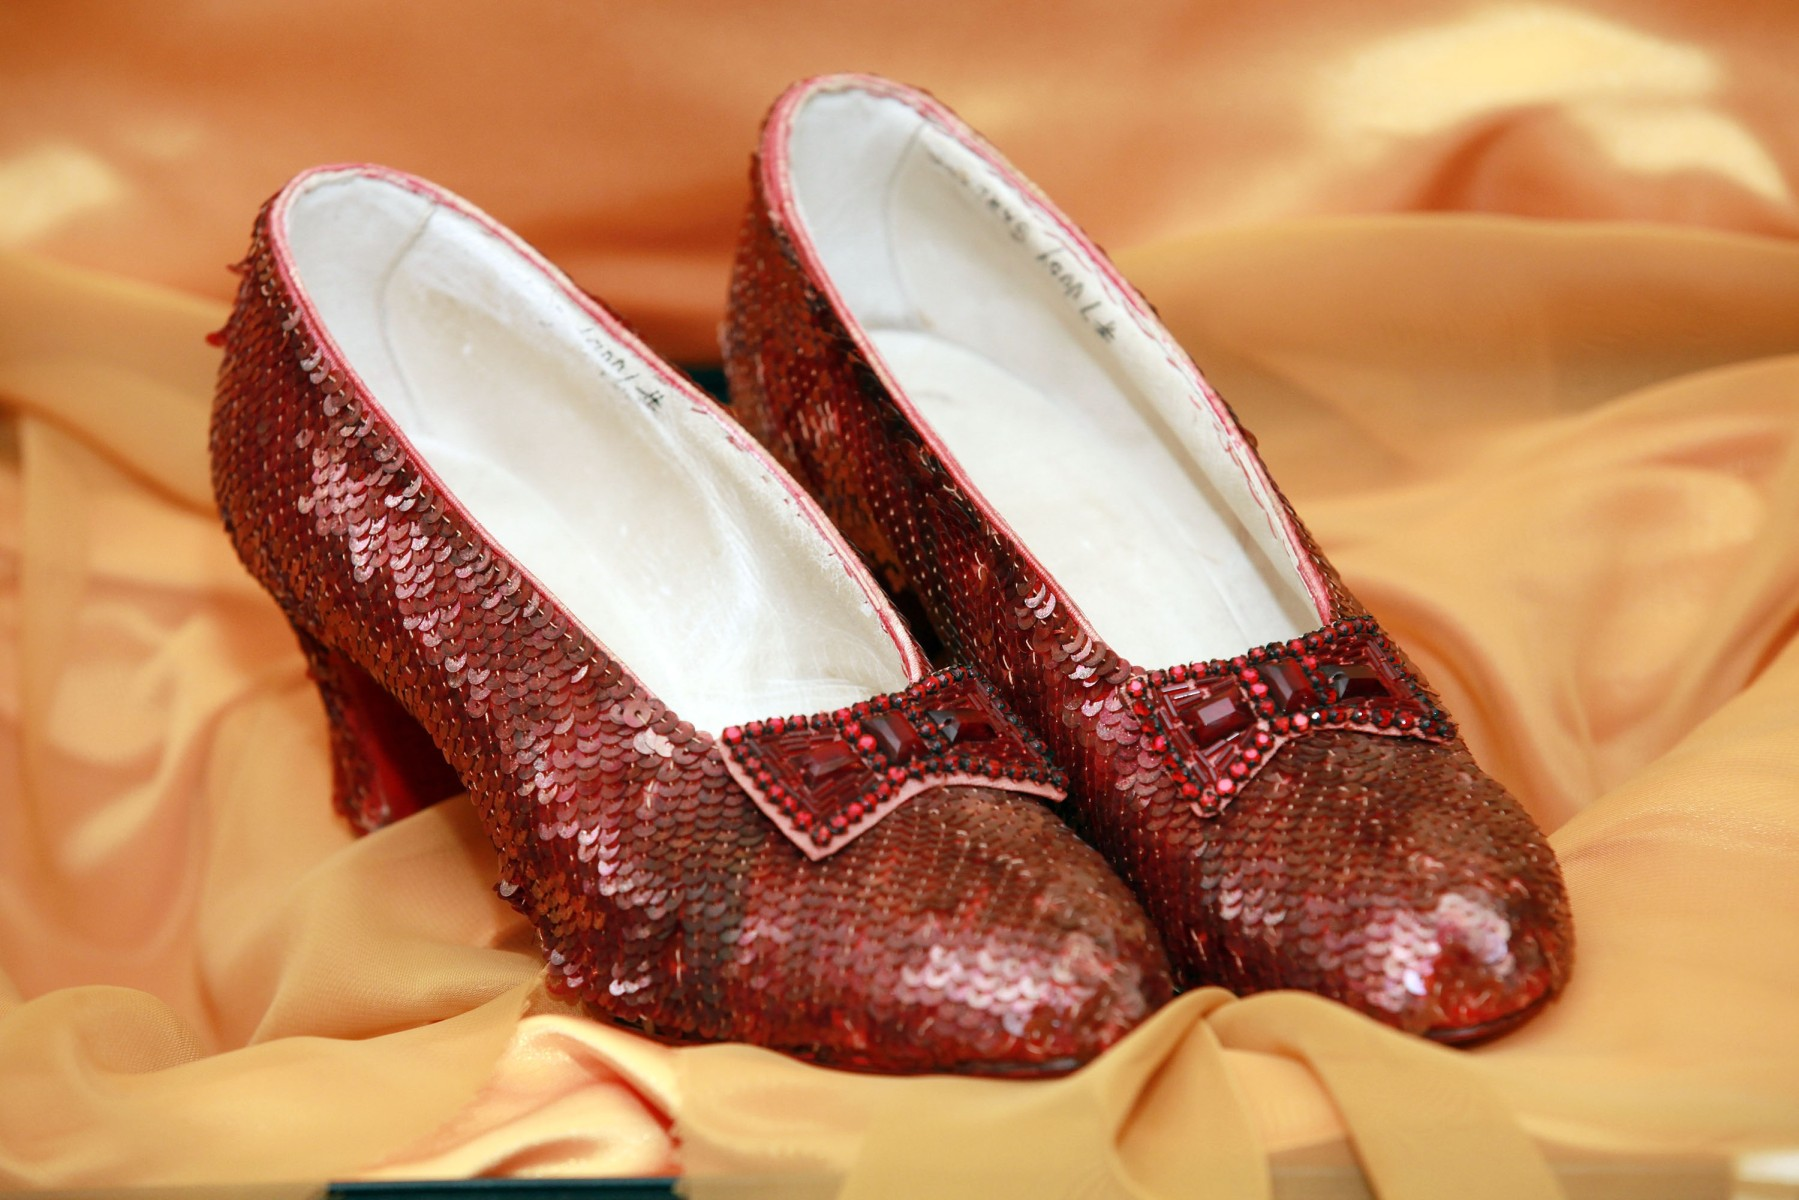 'The Wizard of Oz' Ruby Red Slippers worn by Judy Garland in 1939 are displayed at a viewing at the Plaza Athenee on December 5, 2011 in New York City. 'The Wizard of Oz' Ruby Red slippers are a women's size 5 and appraised at $3 million dollars. (Photo by Astrid Stawiarz/Getty Images)